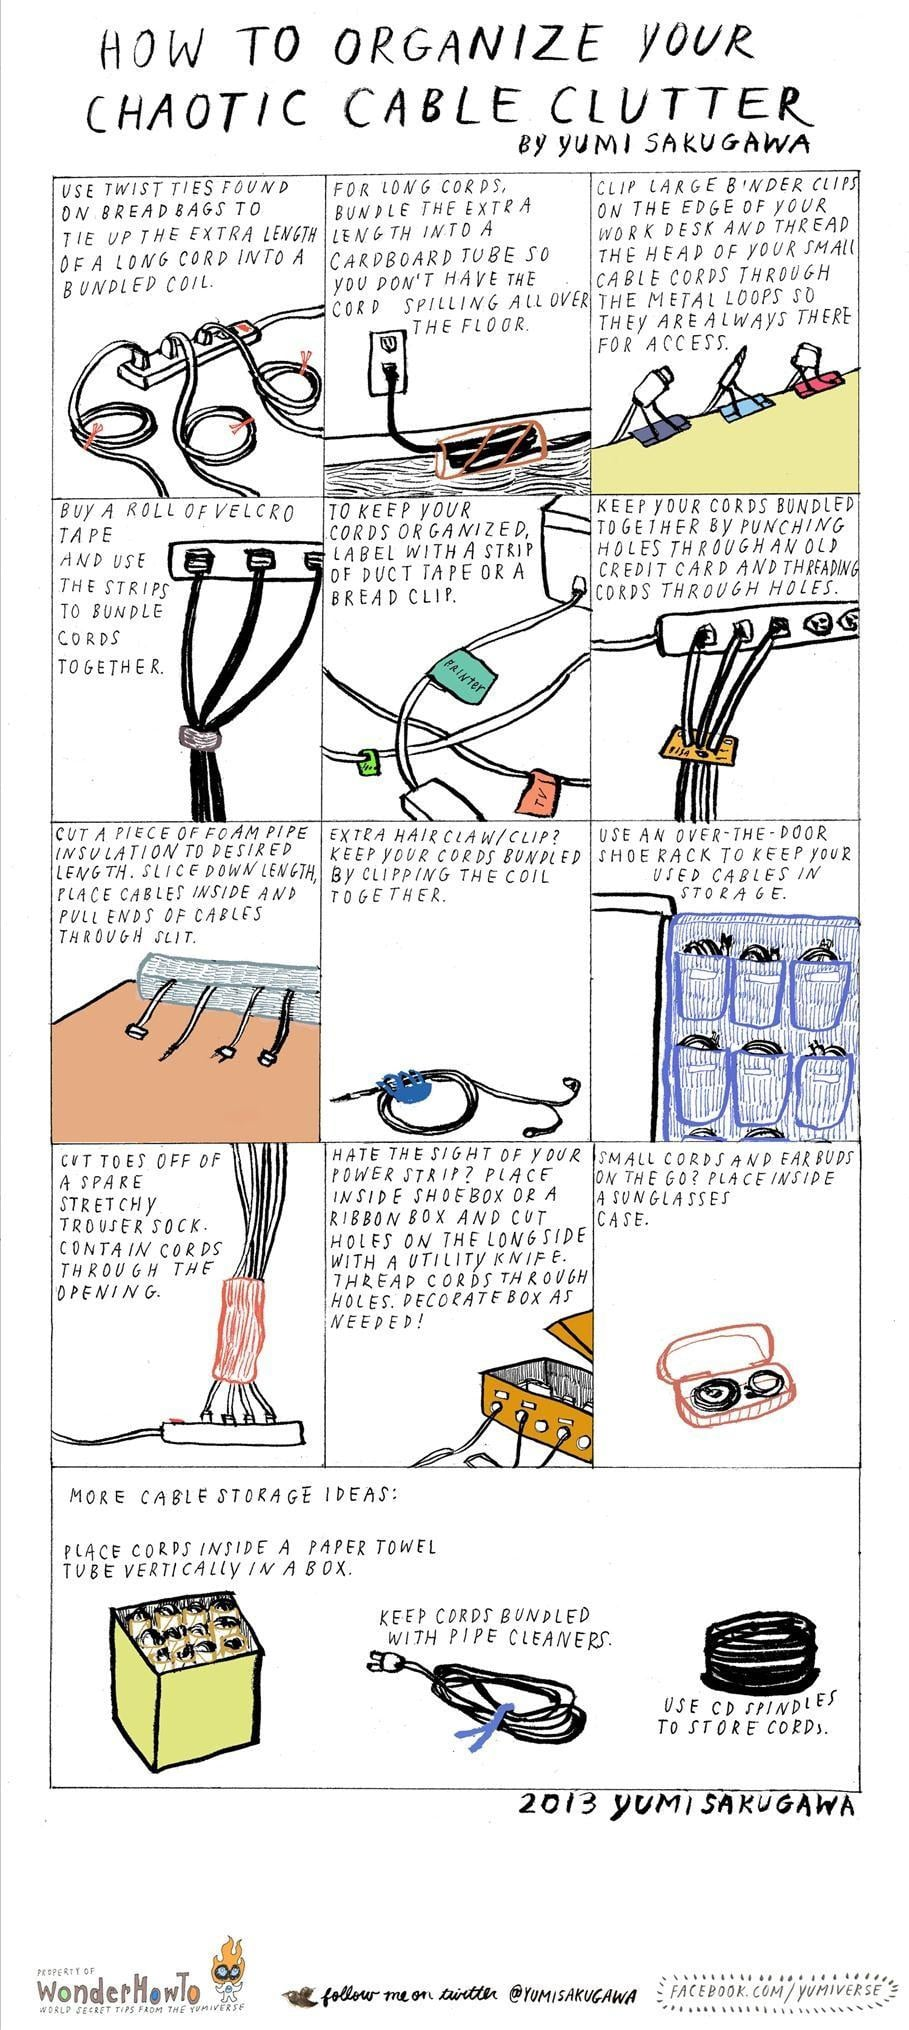 Creative Ways To Organize Chaotic Cable Clutter In Your House [Chart]